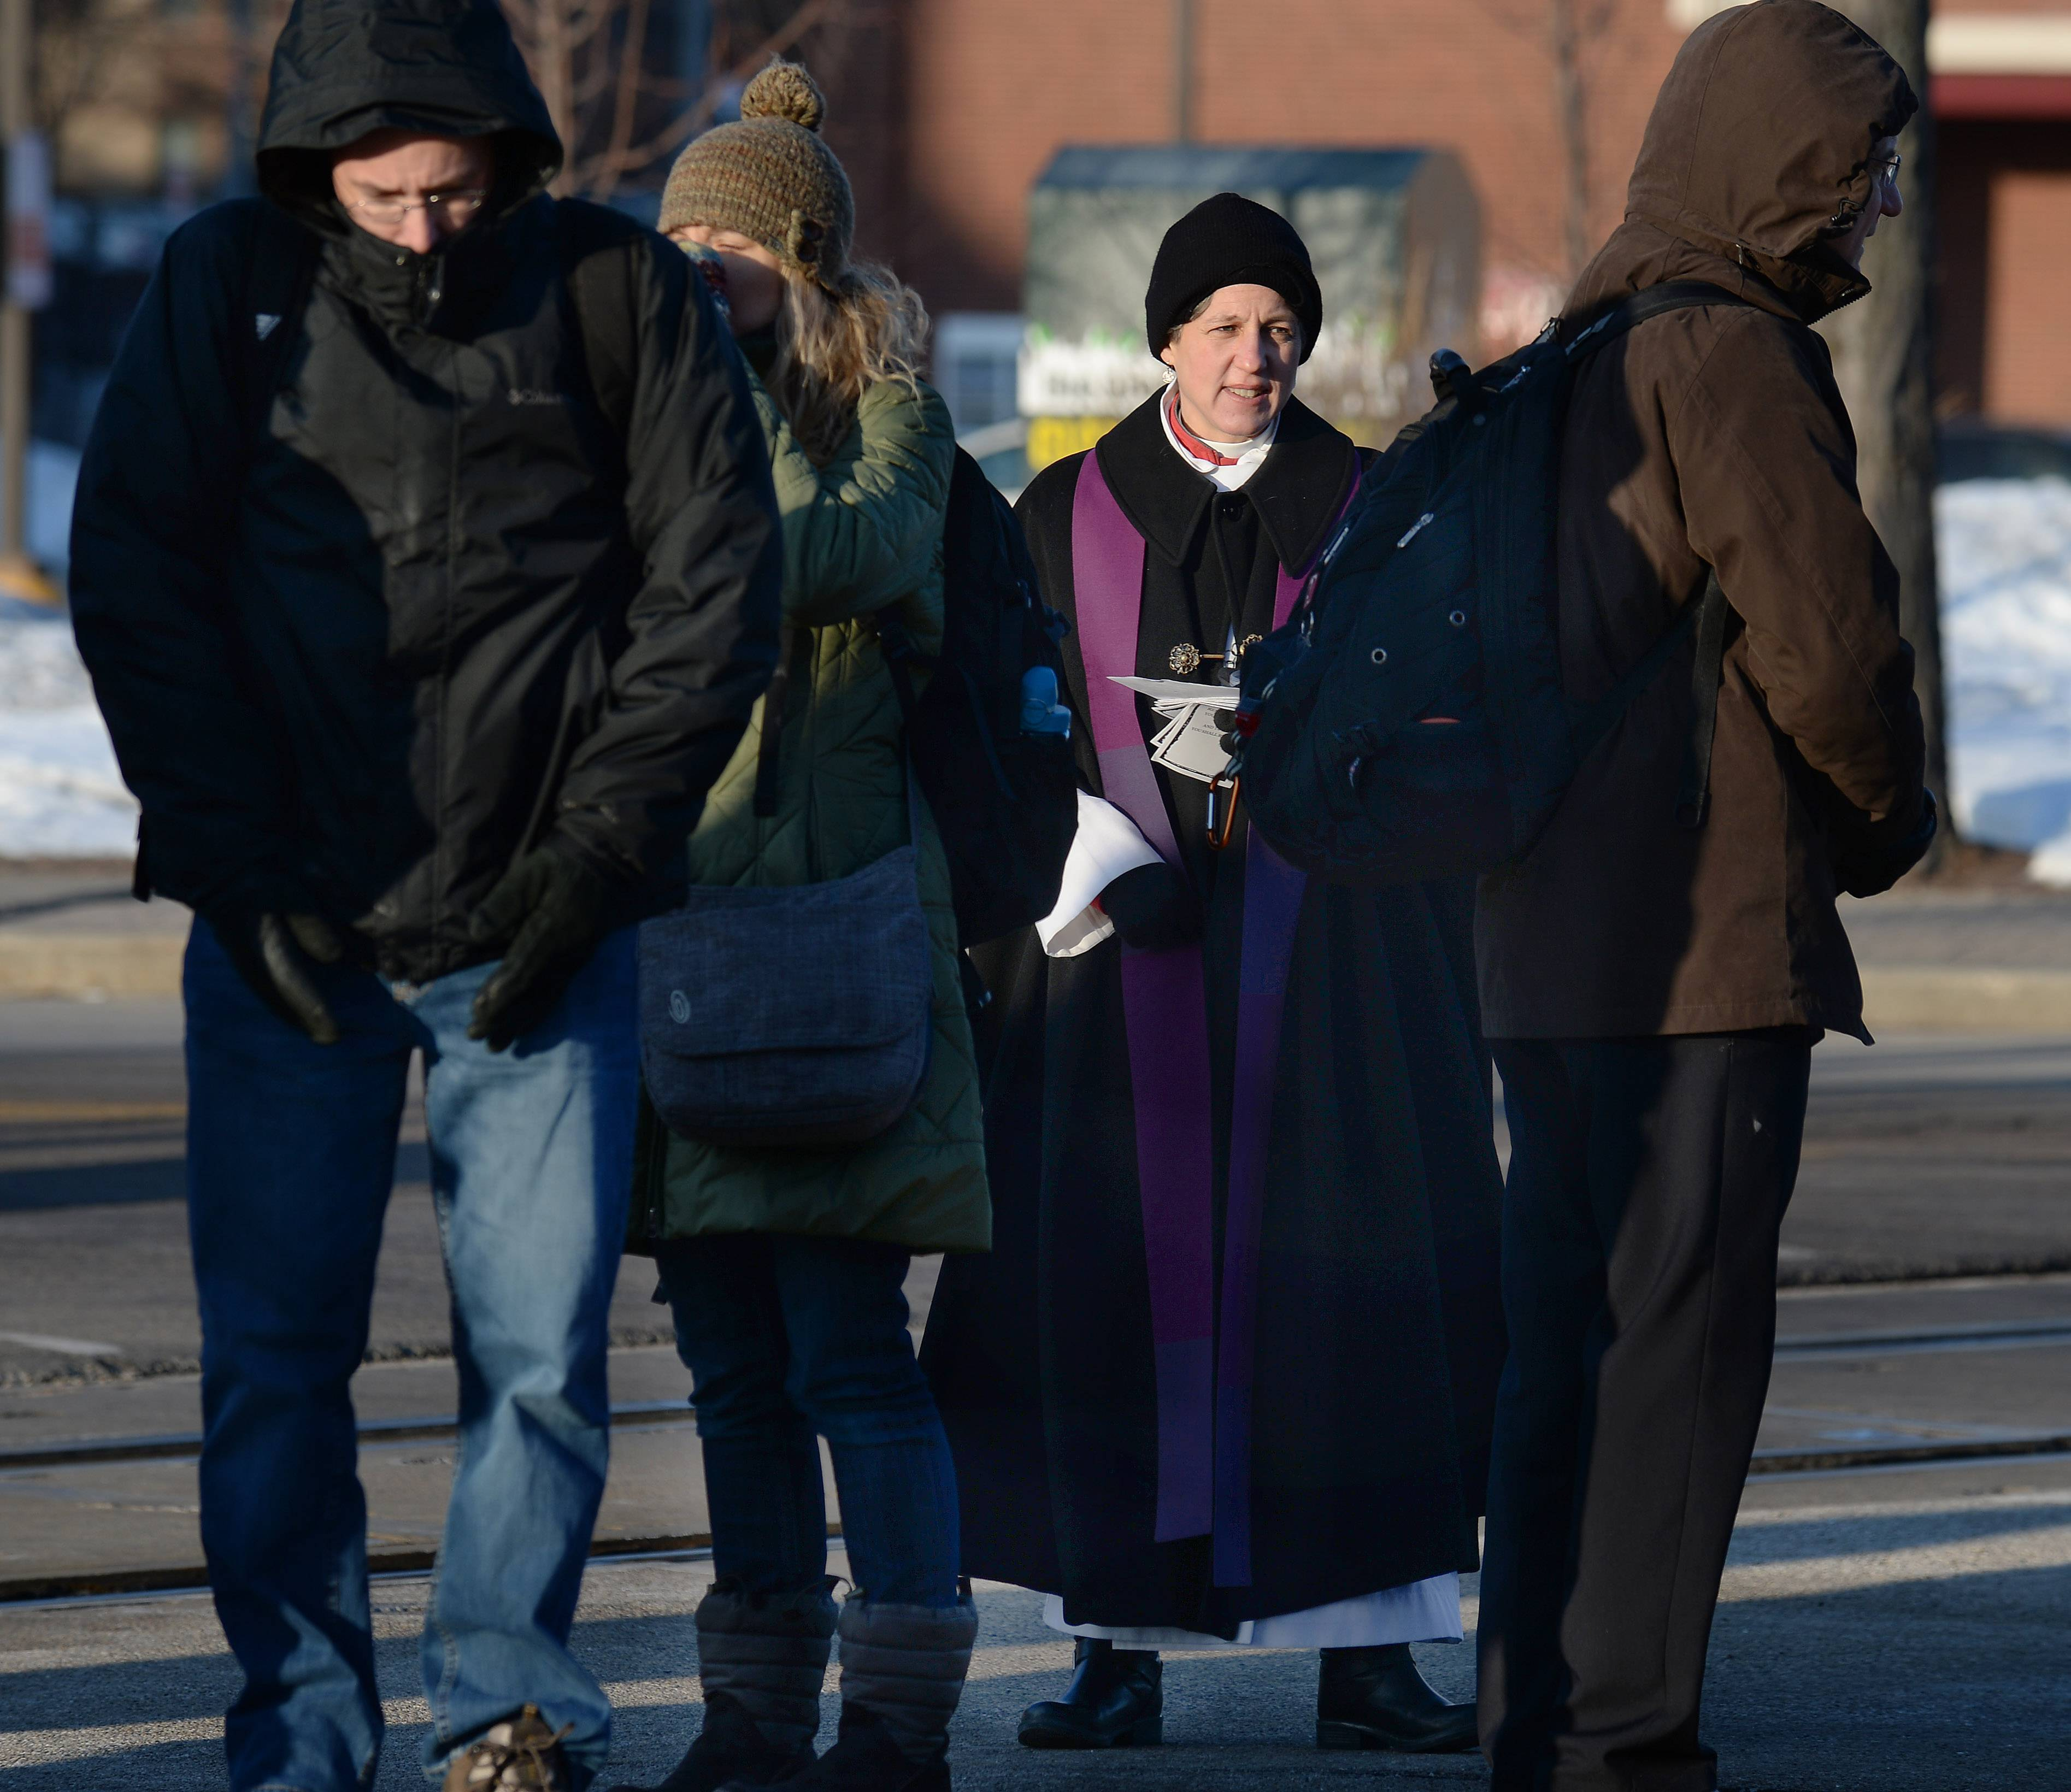 The Rev. Elizabeth Butler Jameson of St. Simon's Episcopal Church in Arlington Heights wore her clerical vestments on Ash Wednesday morning at the Arlington Heights Metra station.